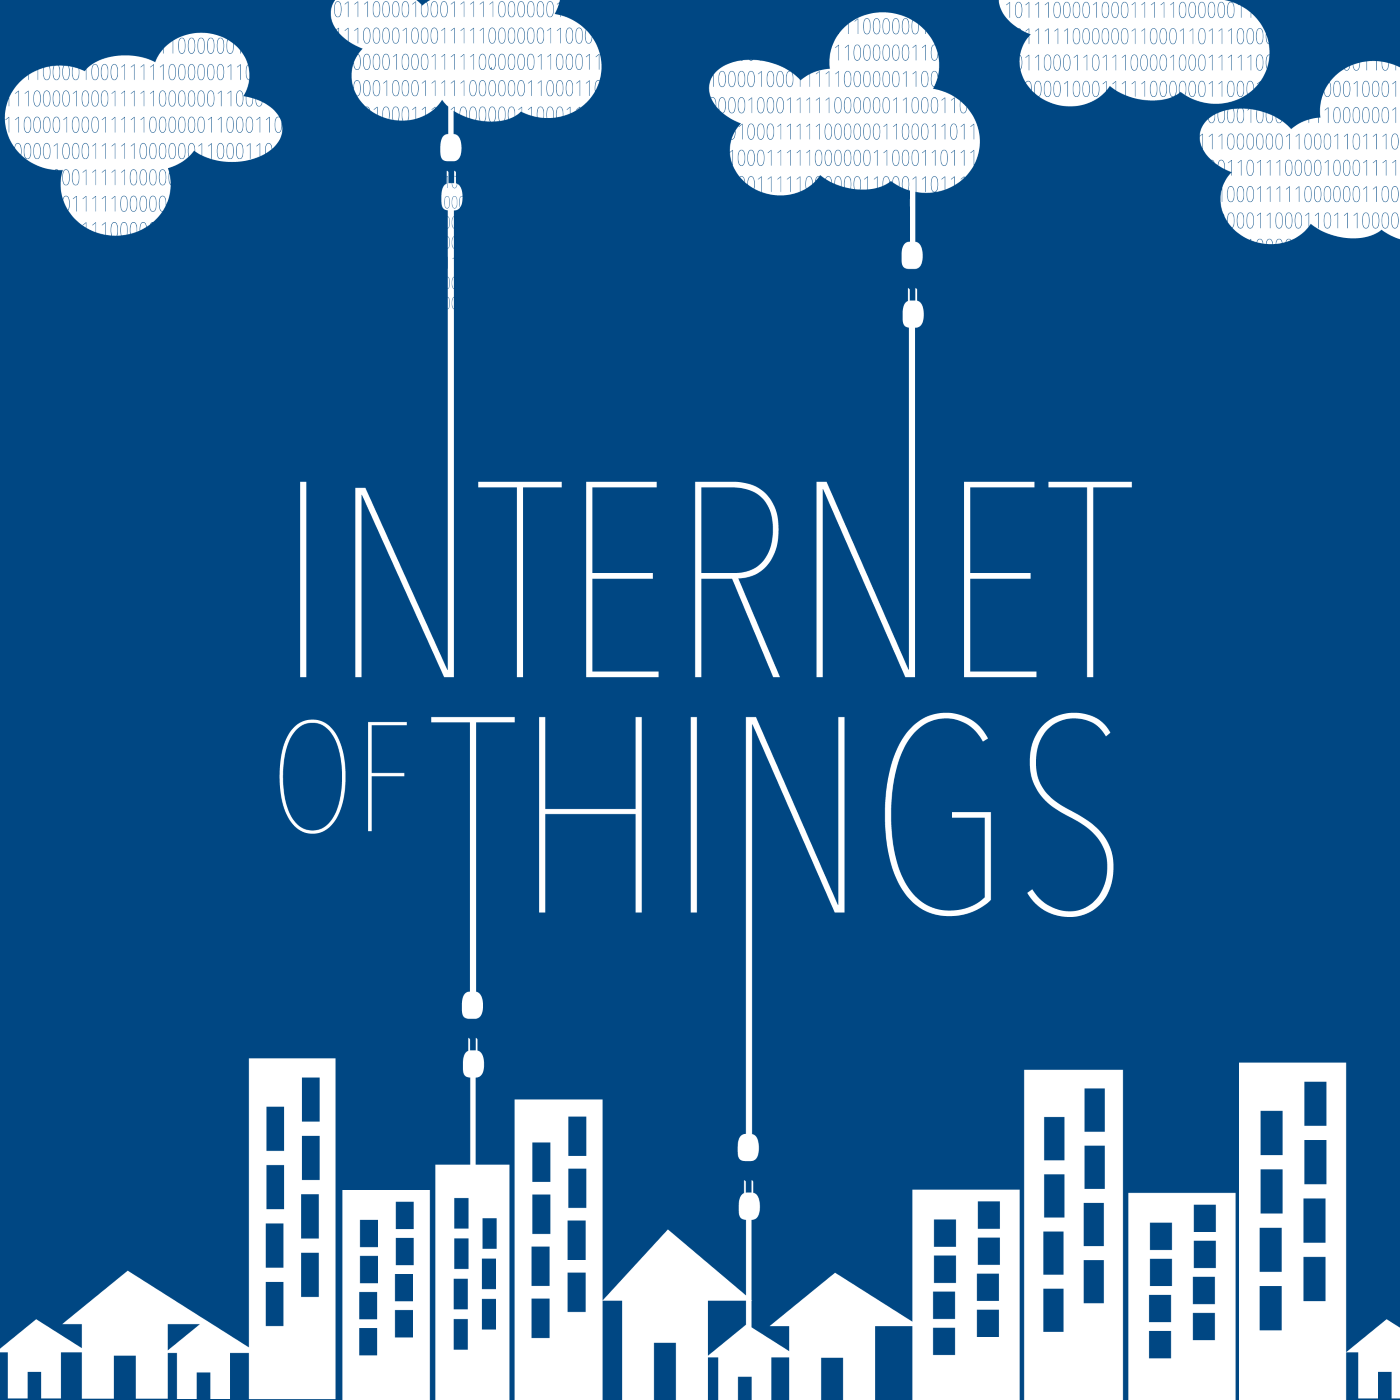 Episode 326: It's about ethics in smart devices